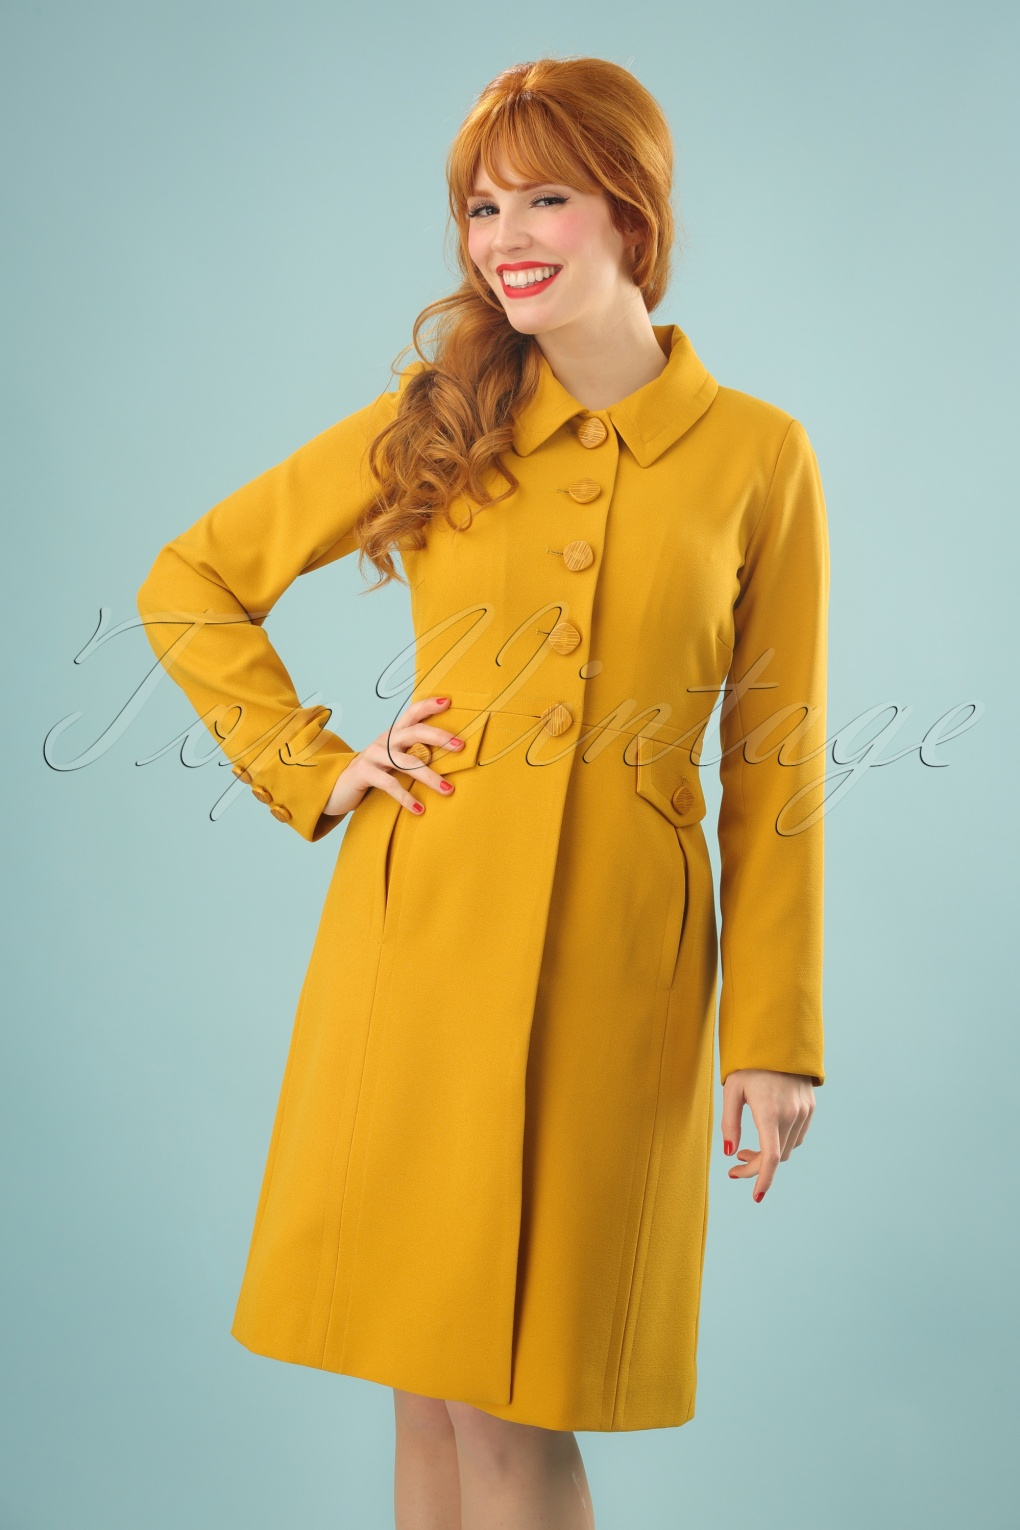 Vintage Coats & Jackets | Retro Coats and Jackets 60s Luisa Coat in Honey Yellow £139.61 AT vintagedancer.com